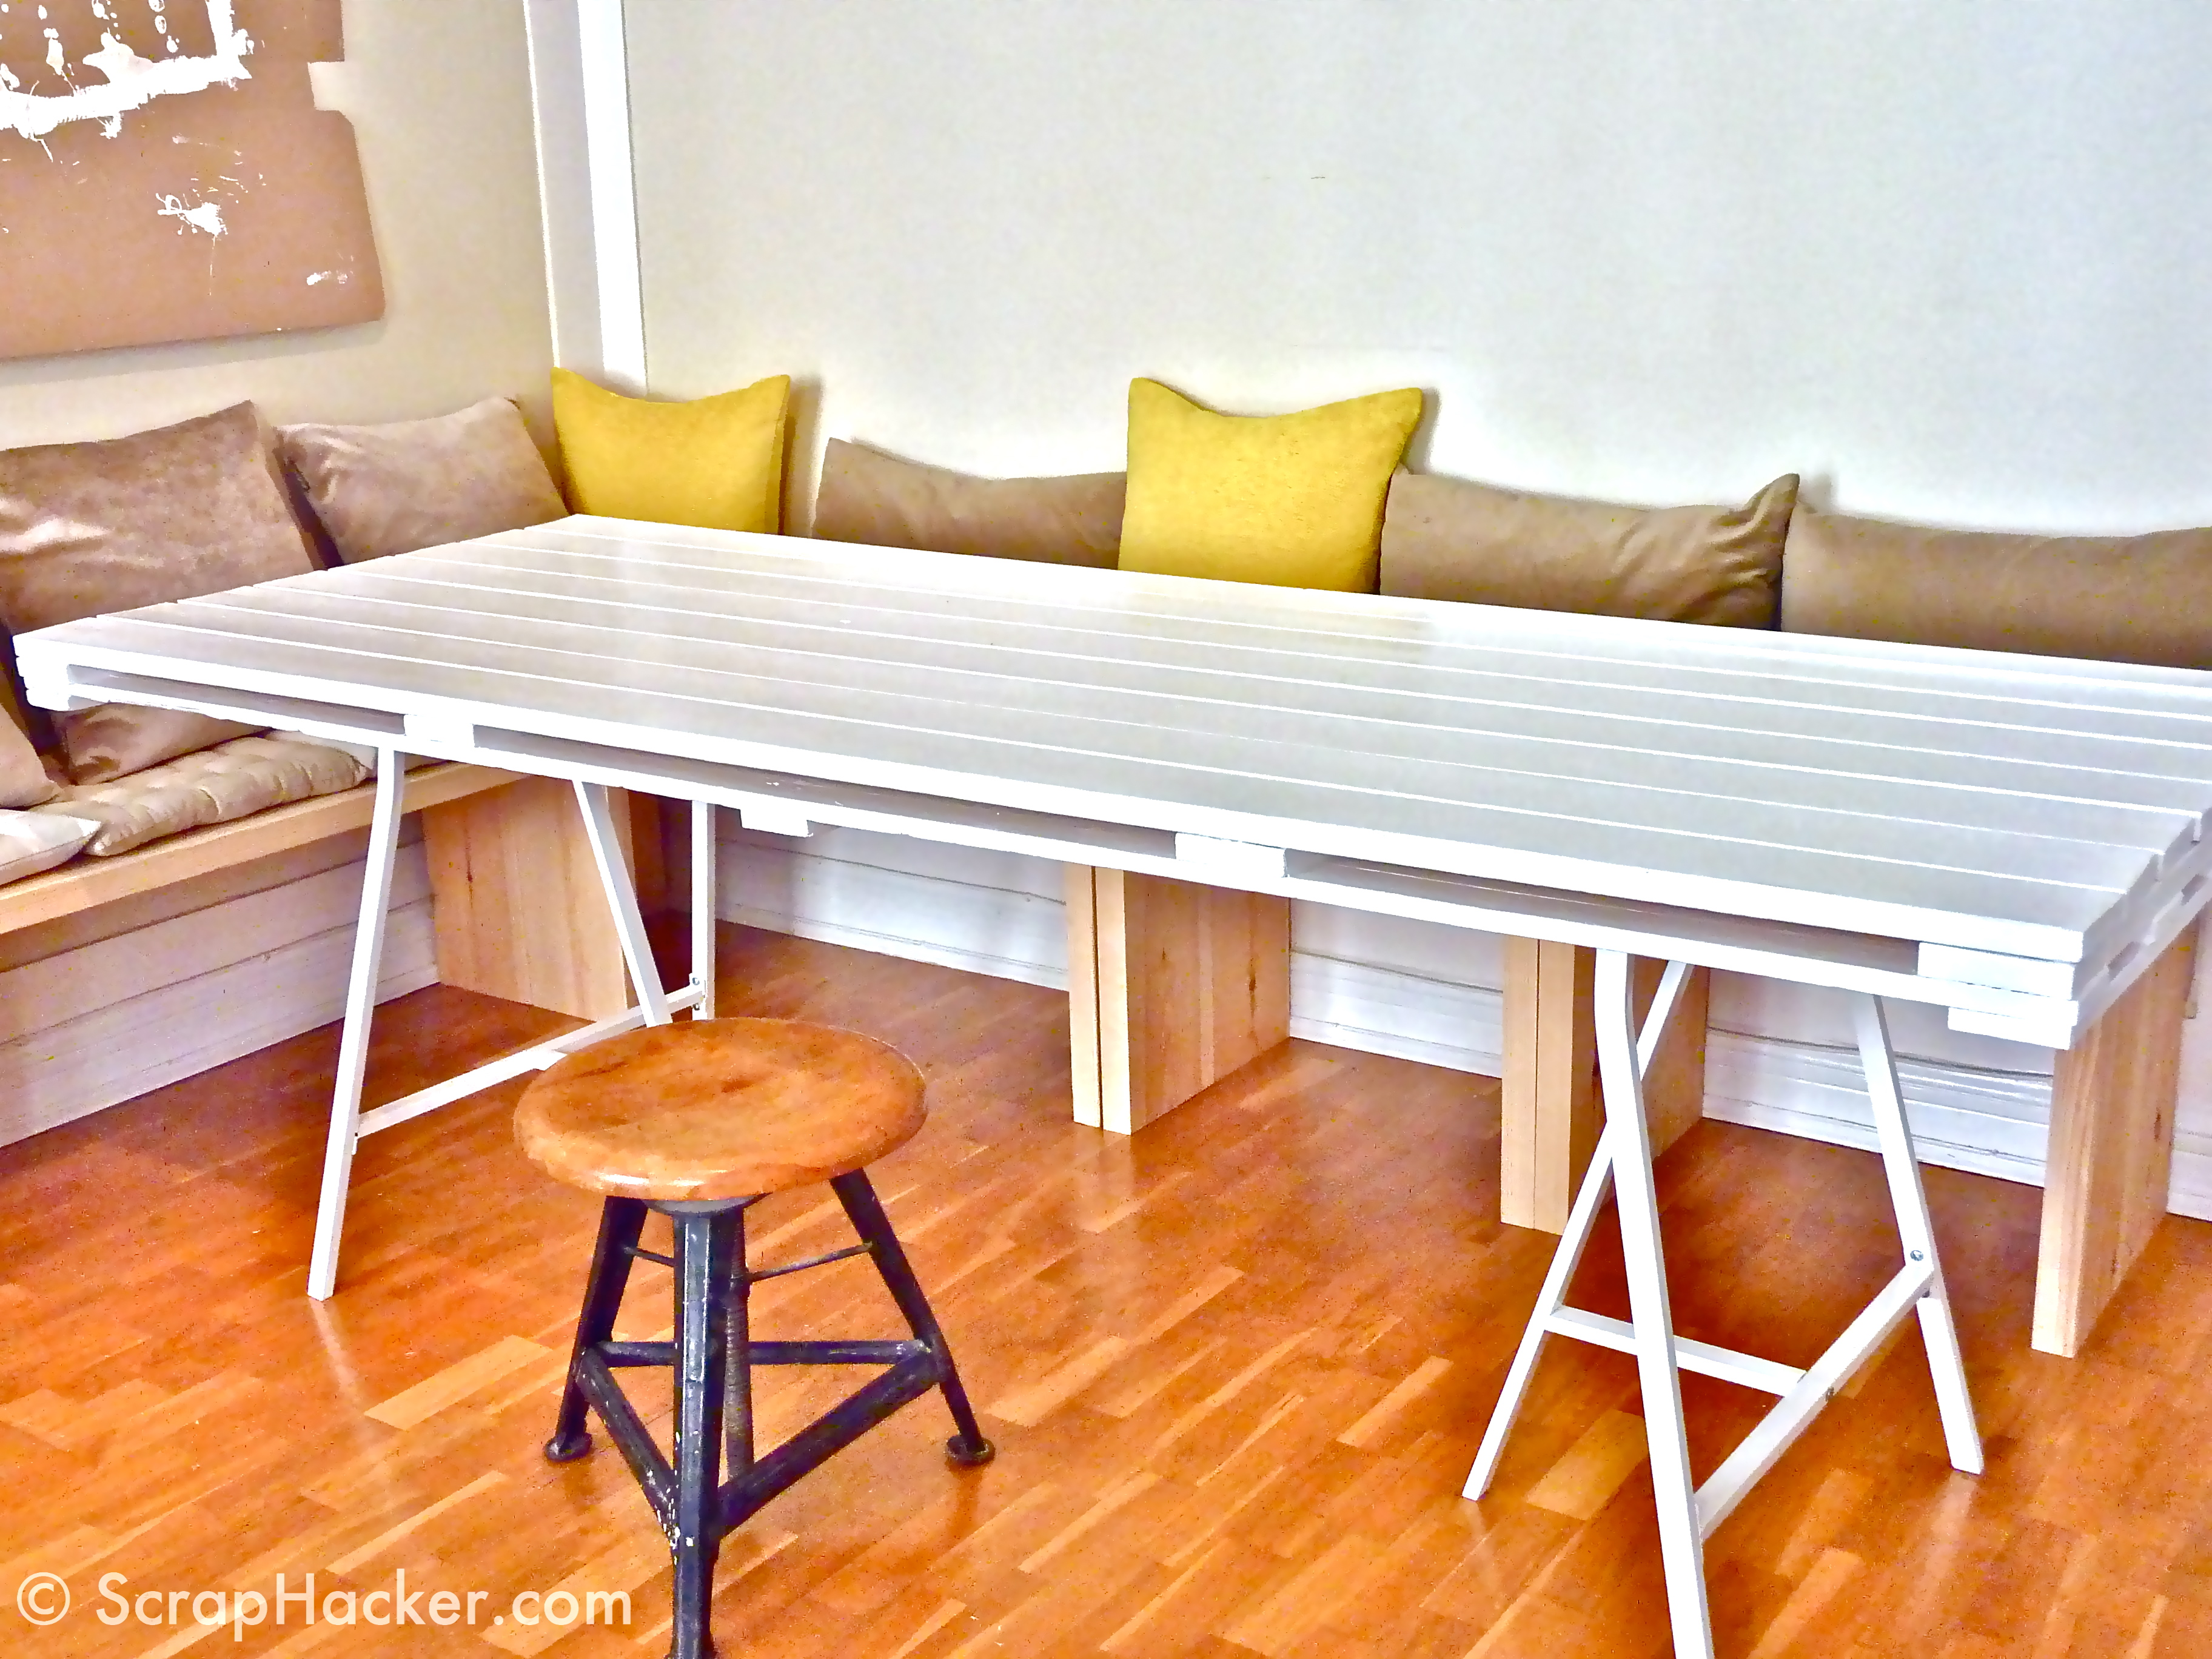 13 Easy And Cost Effective DIY Pallet Dining Tables  : easy cost effective diy pallet dining tables 9 from www.shelterness.com size 3648 x 2736 jpeg 2262kB